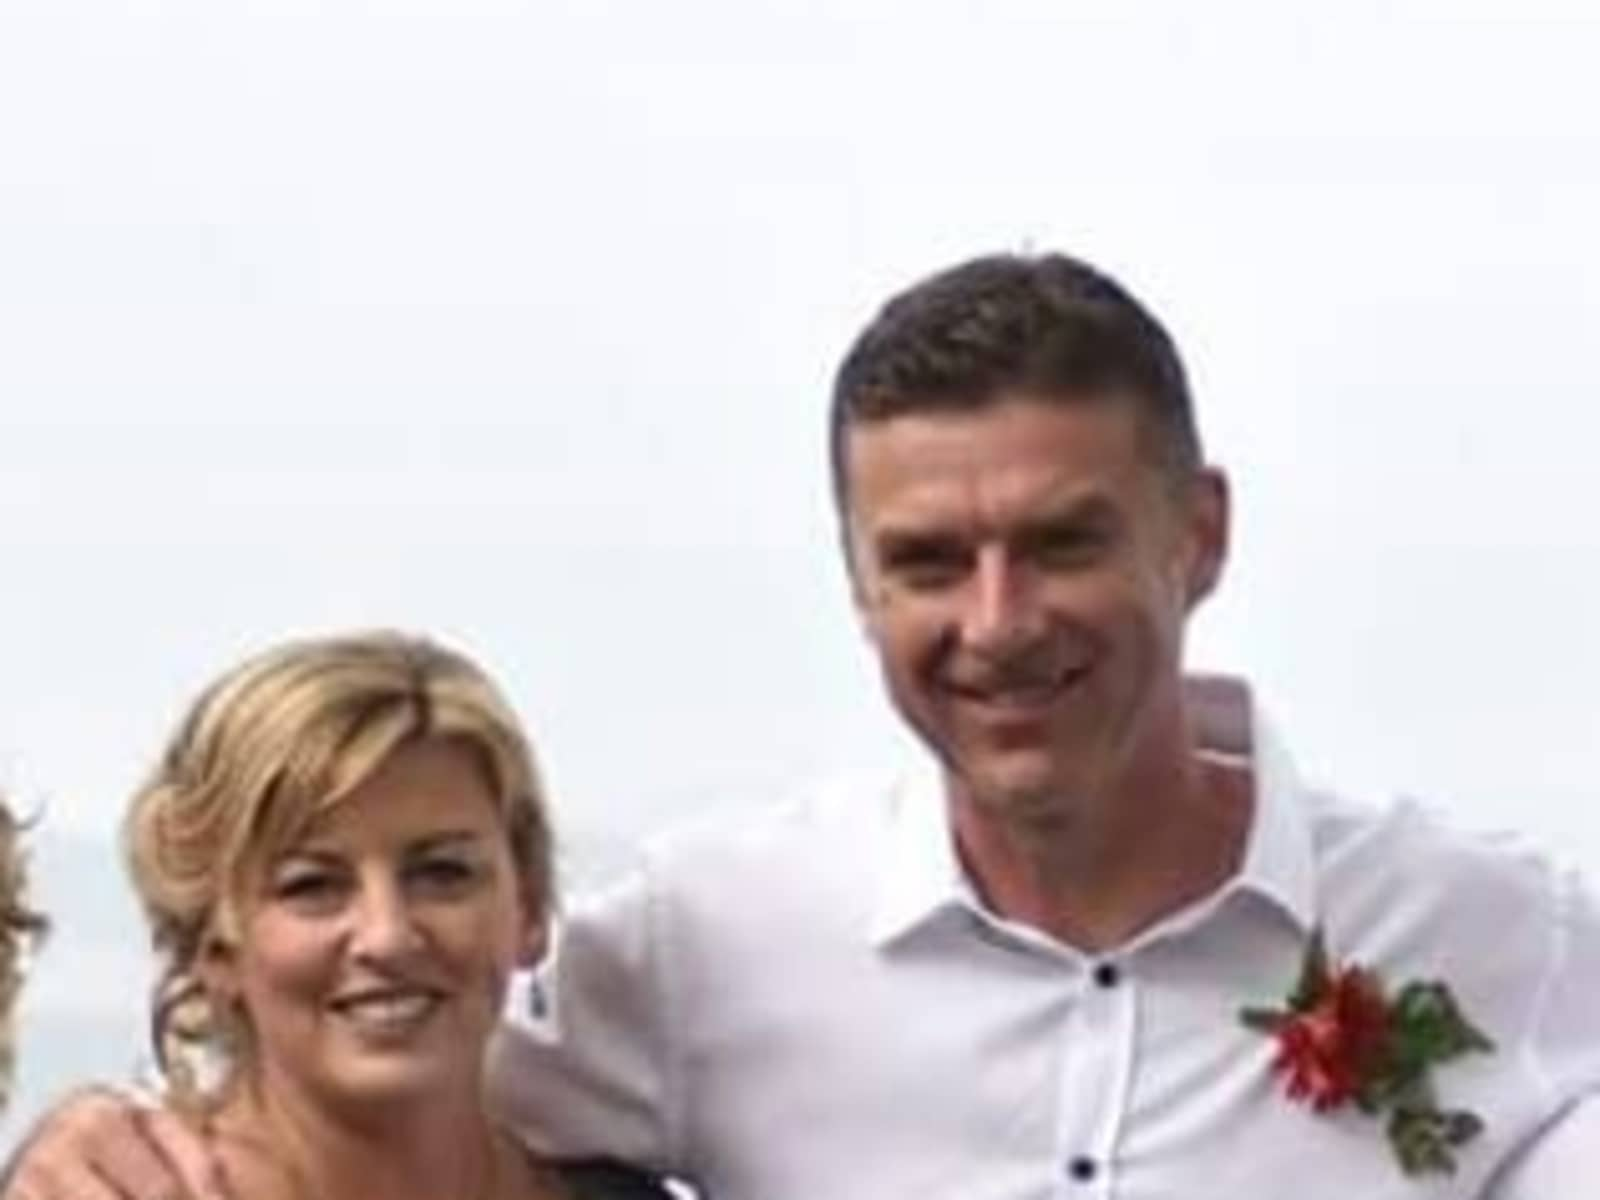 Peter & Kim from Dunbogan, New South Wales, Australia